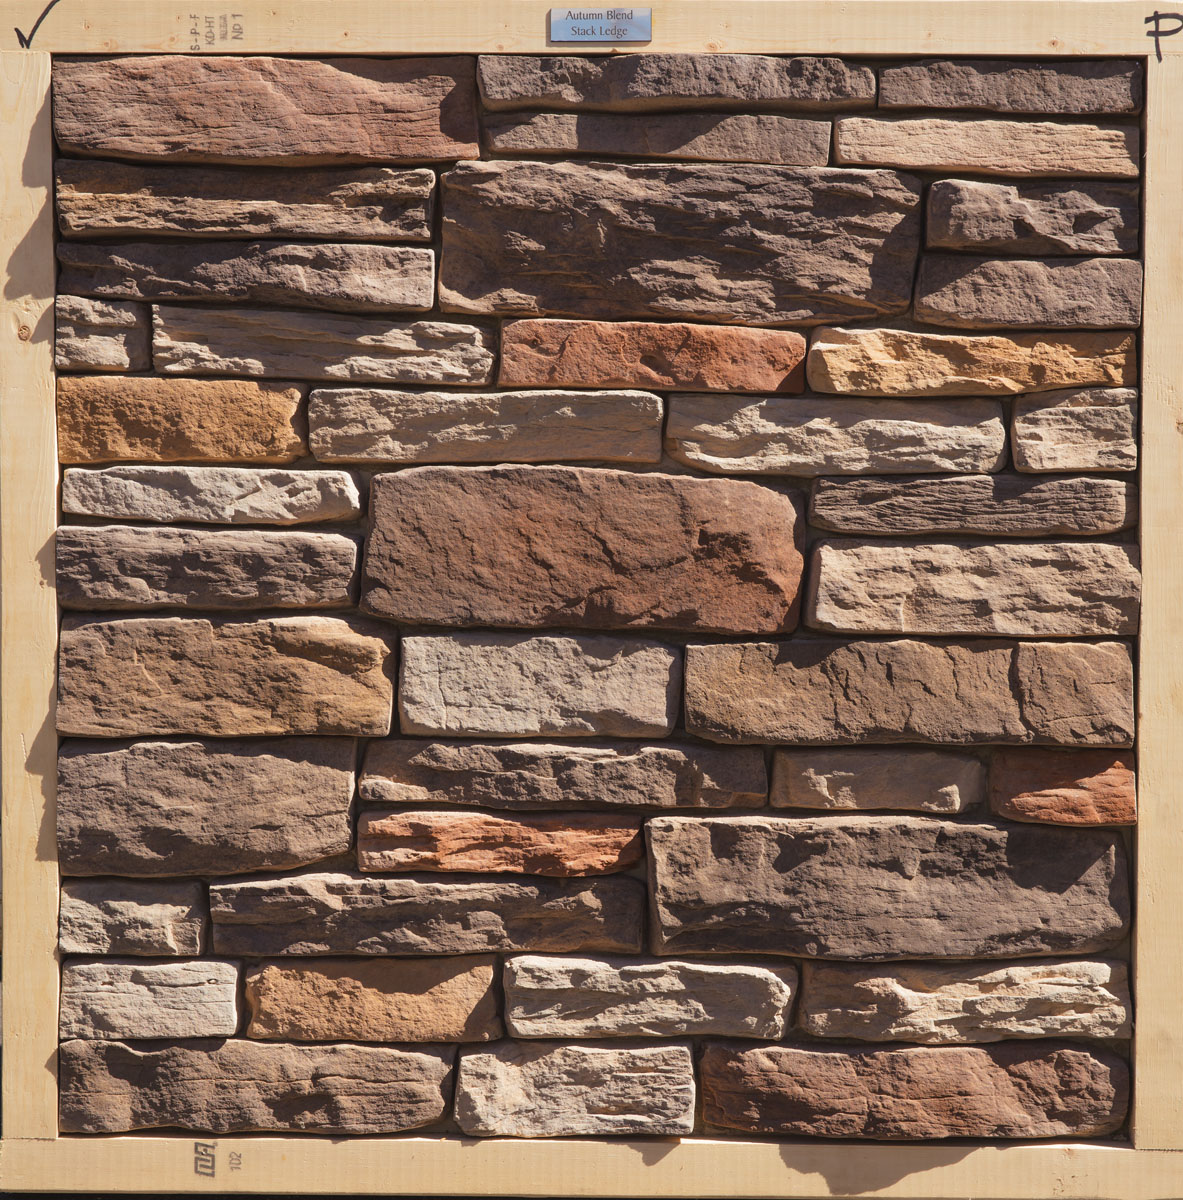 Autumn blend archives manufactured stone supply for Environmental stoneworks pricing